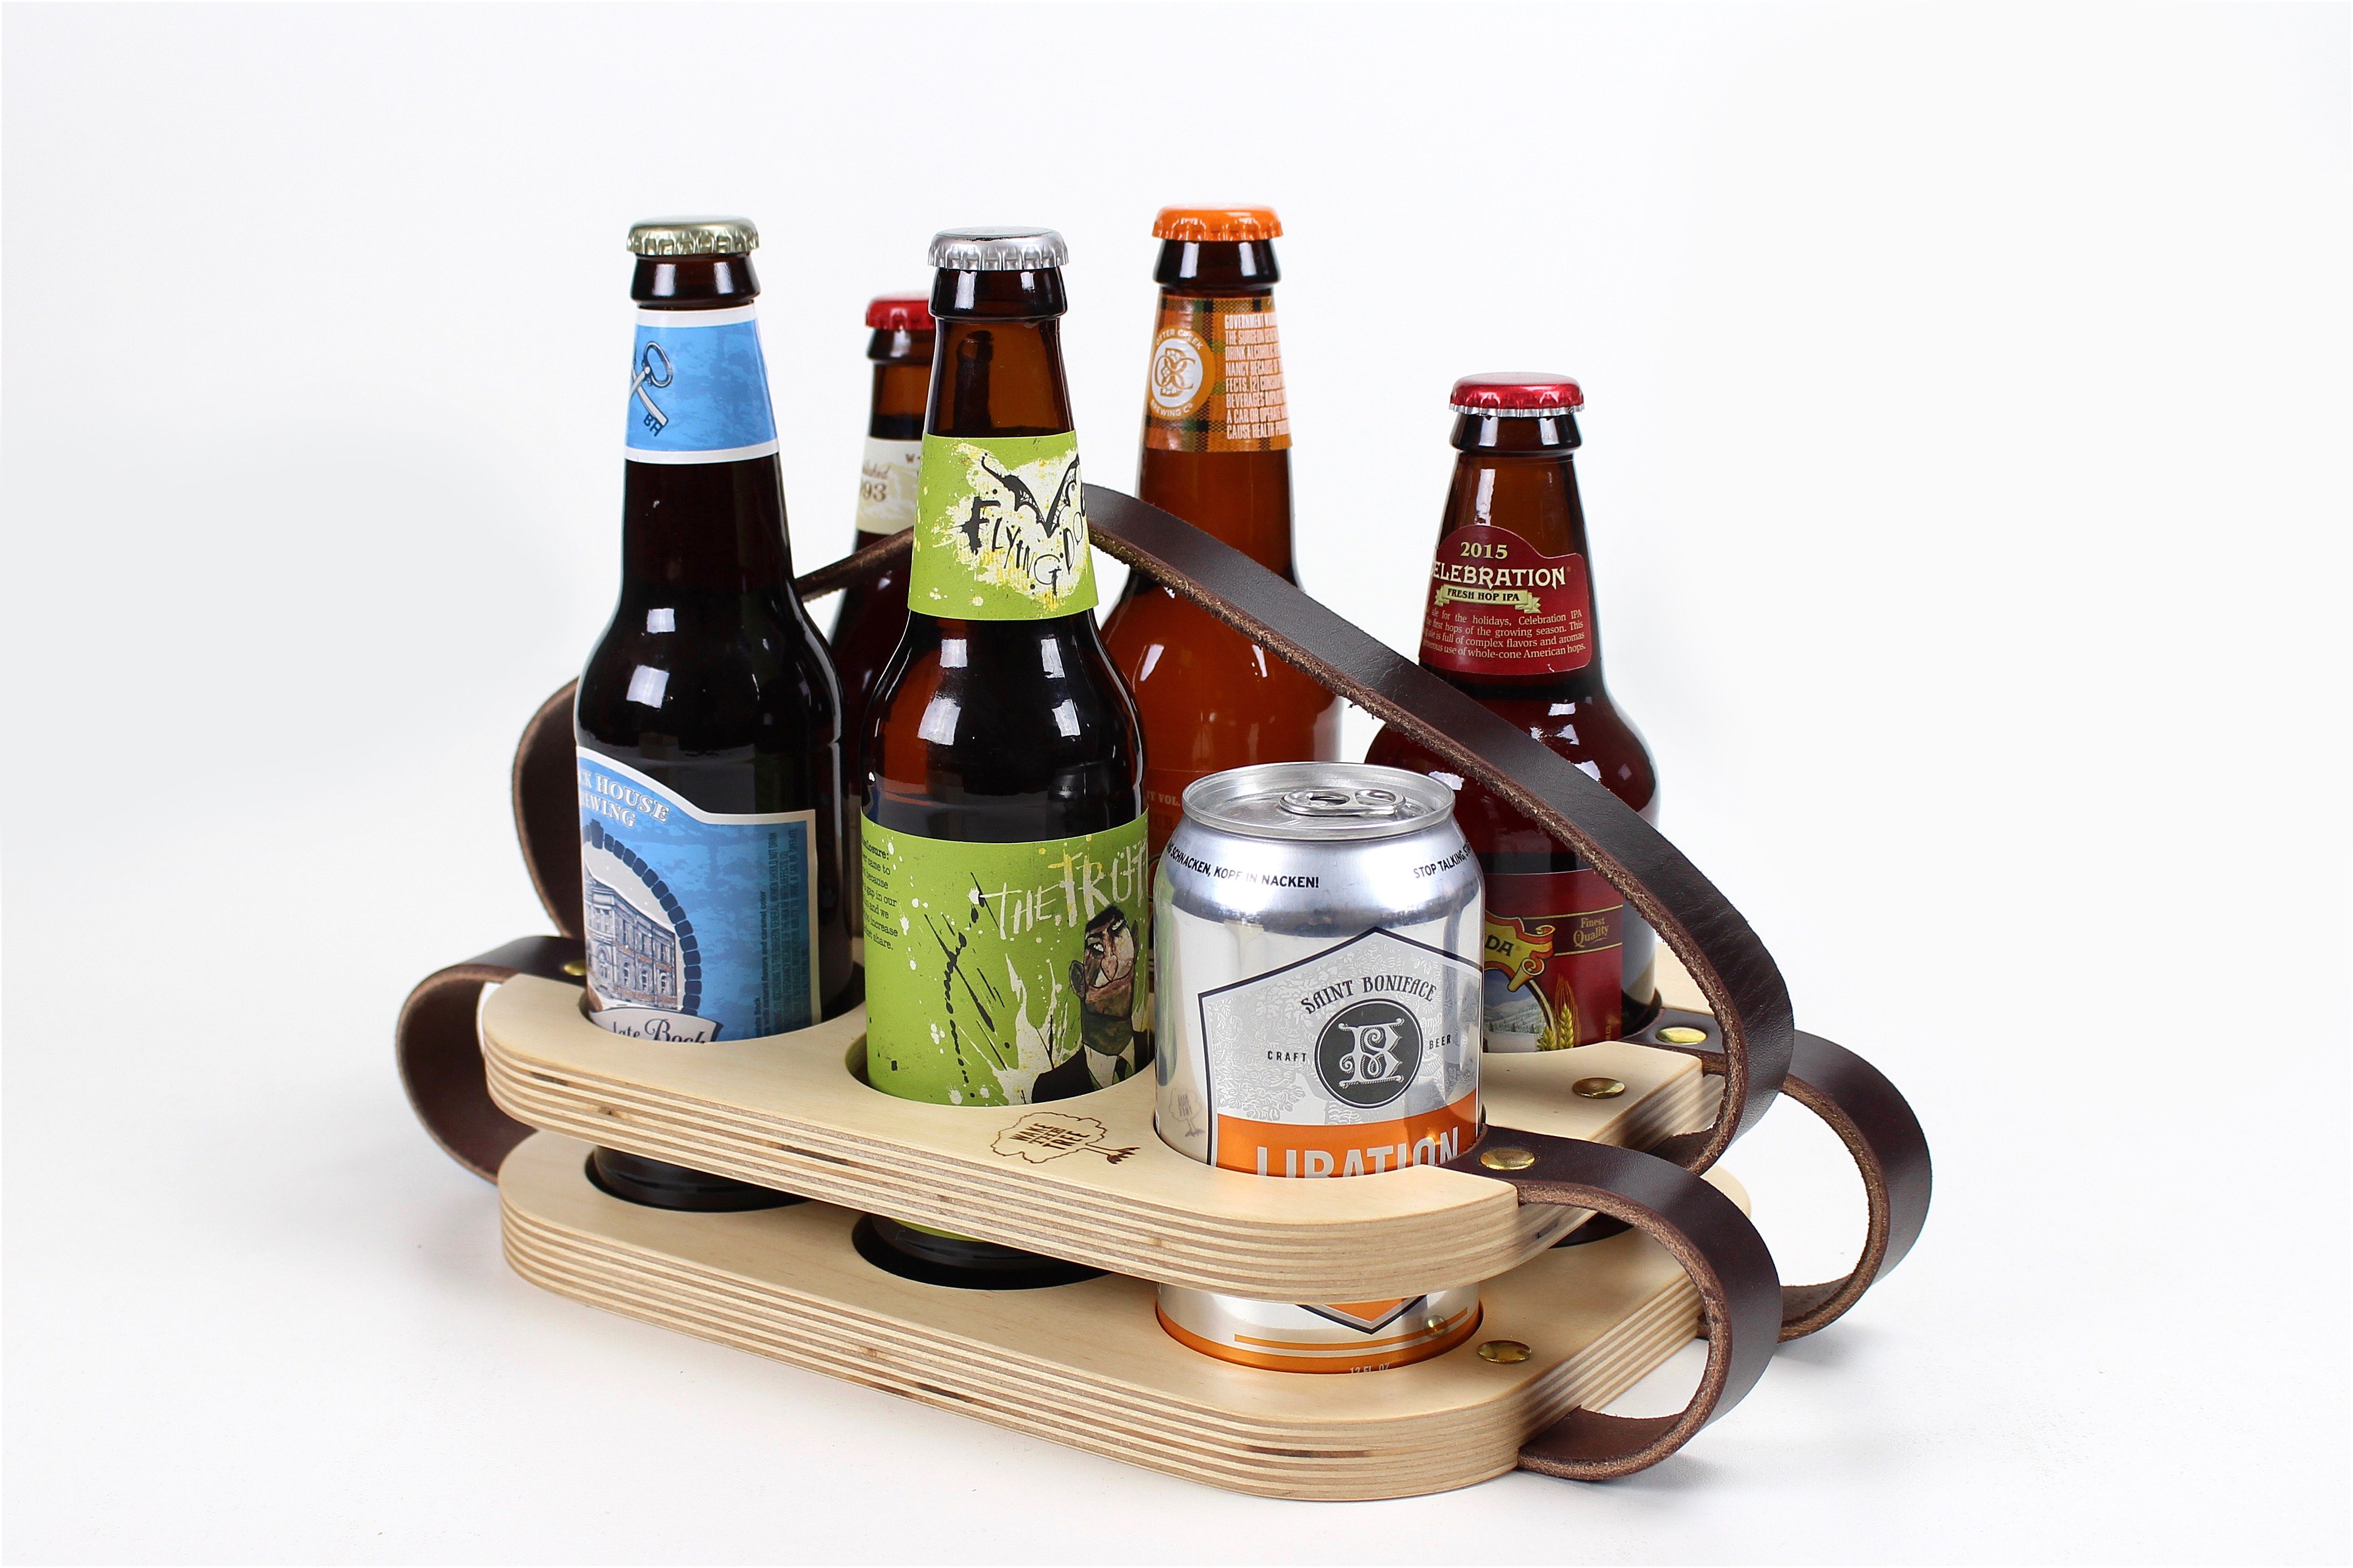 Bier Houder Buy A Custom Six Pack Carrier Wood And Leather Beer